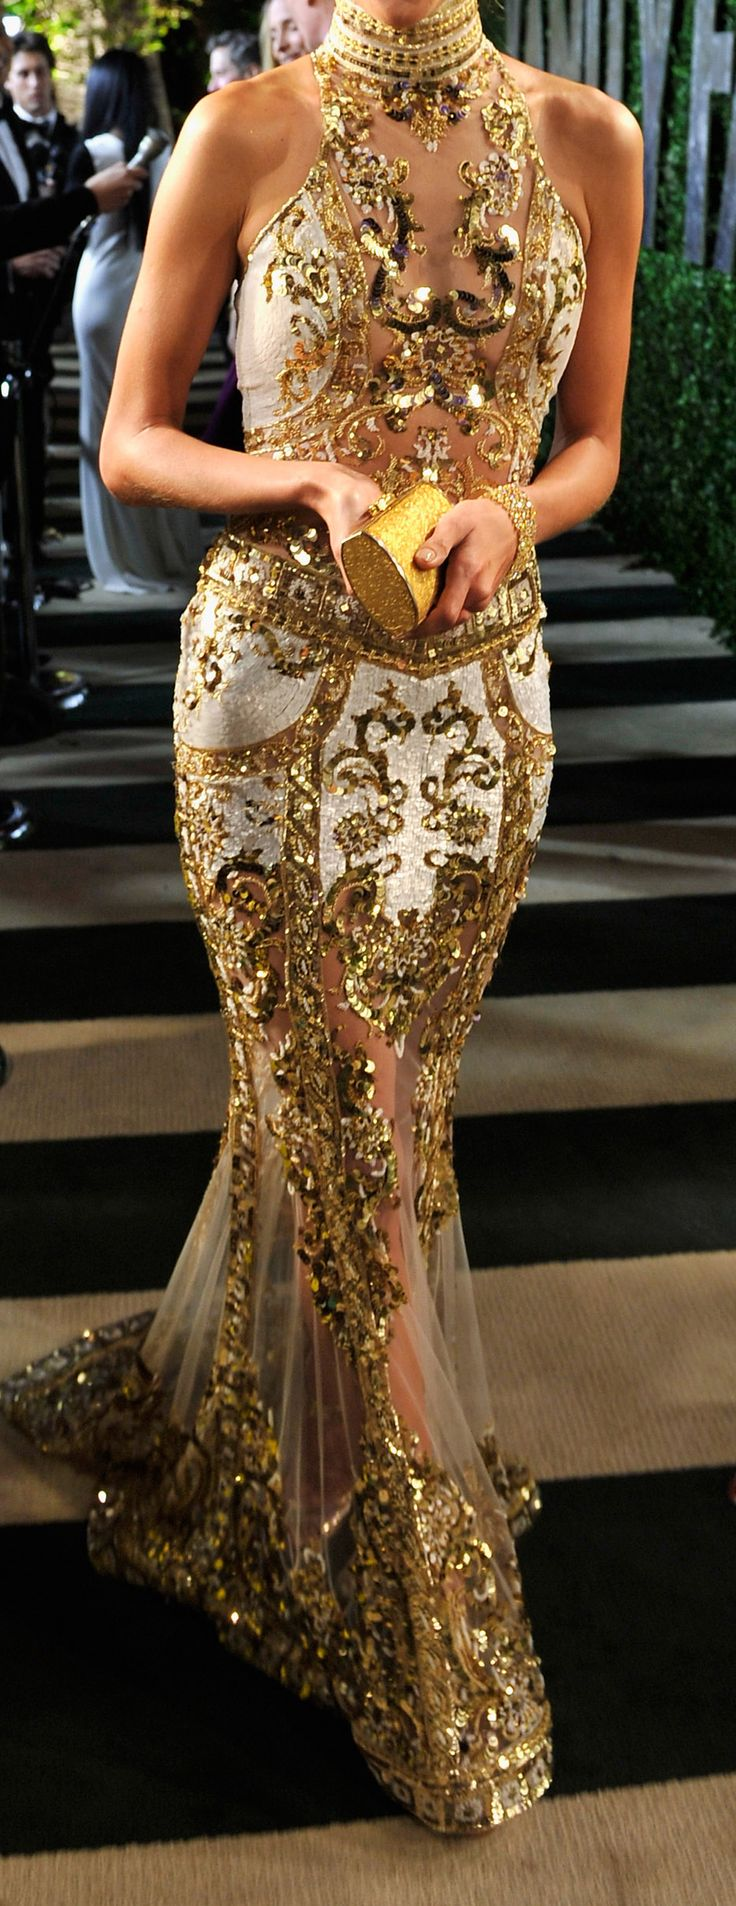 Zuhair Murad Gown- shows a little more skin then I like but it's still a stunning design!